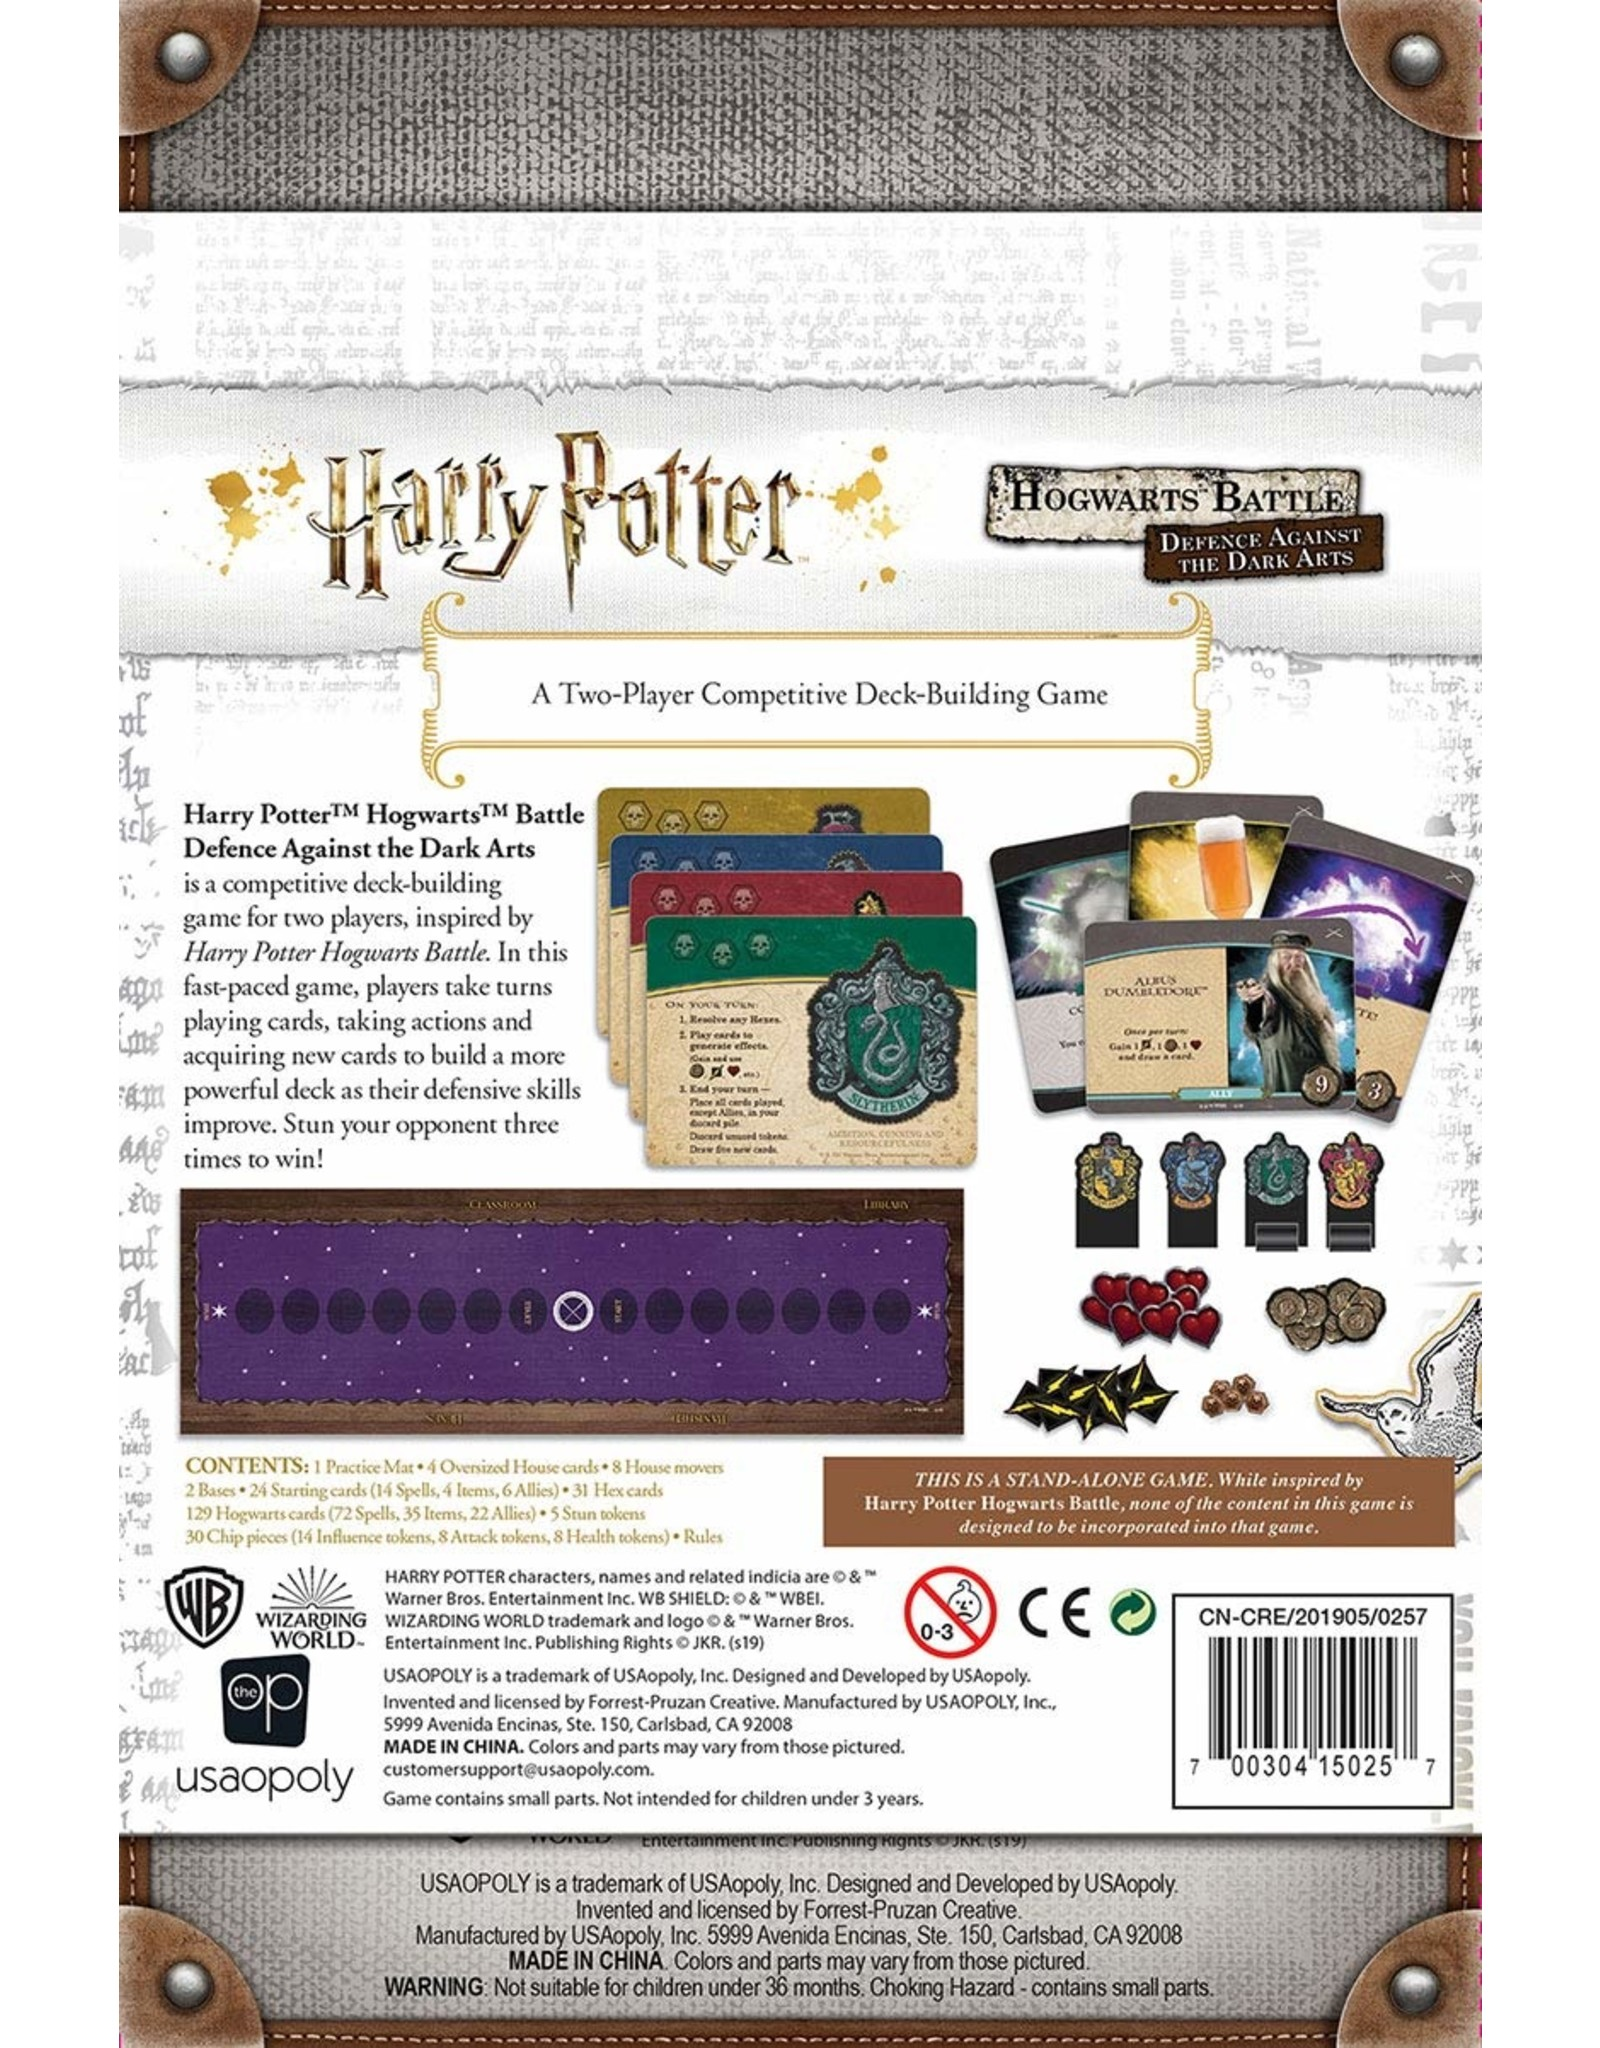 Harry Potter Defense Against The Dark Arts Deck Building Game Hub Hobby